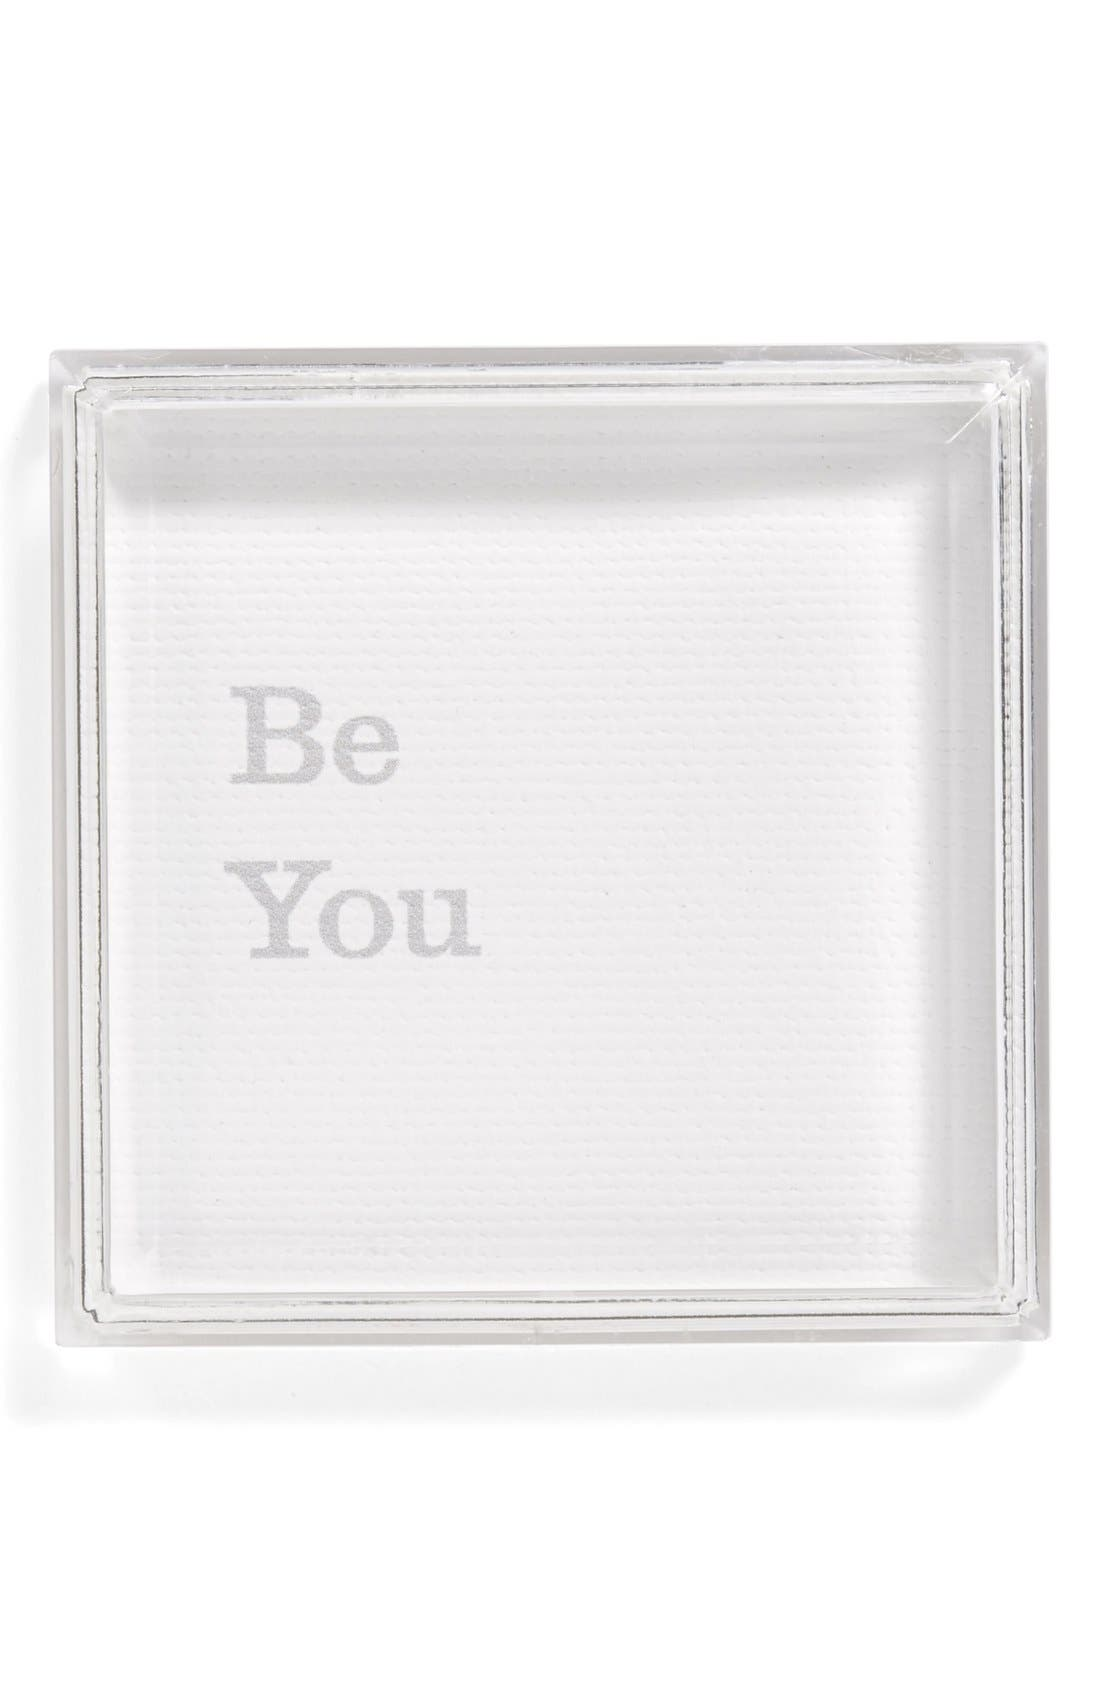 Alternate Image 1 Selected - Petal Lane 'Be You' Magnet